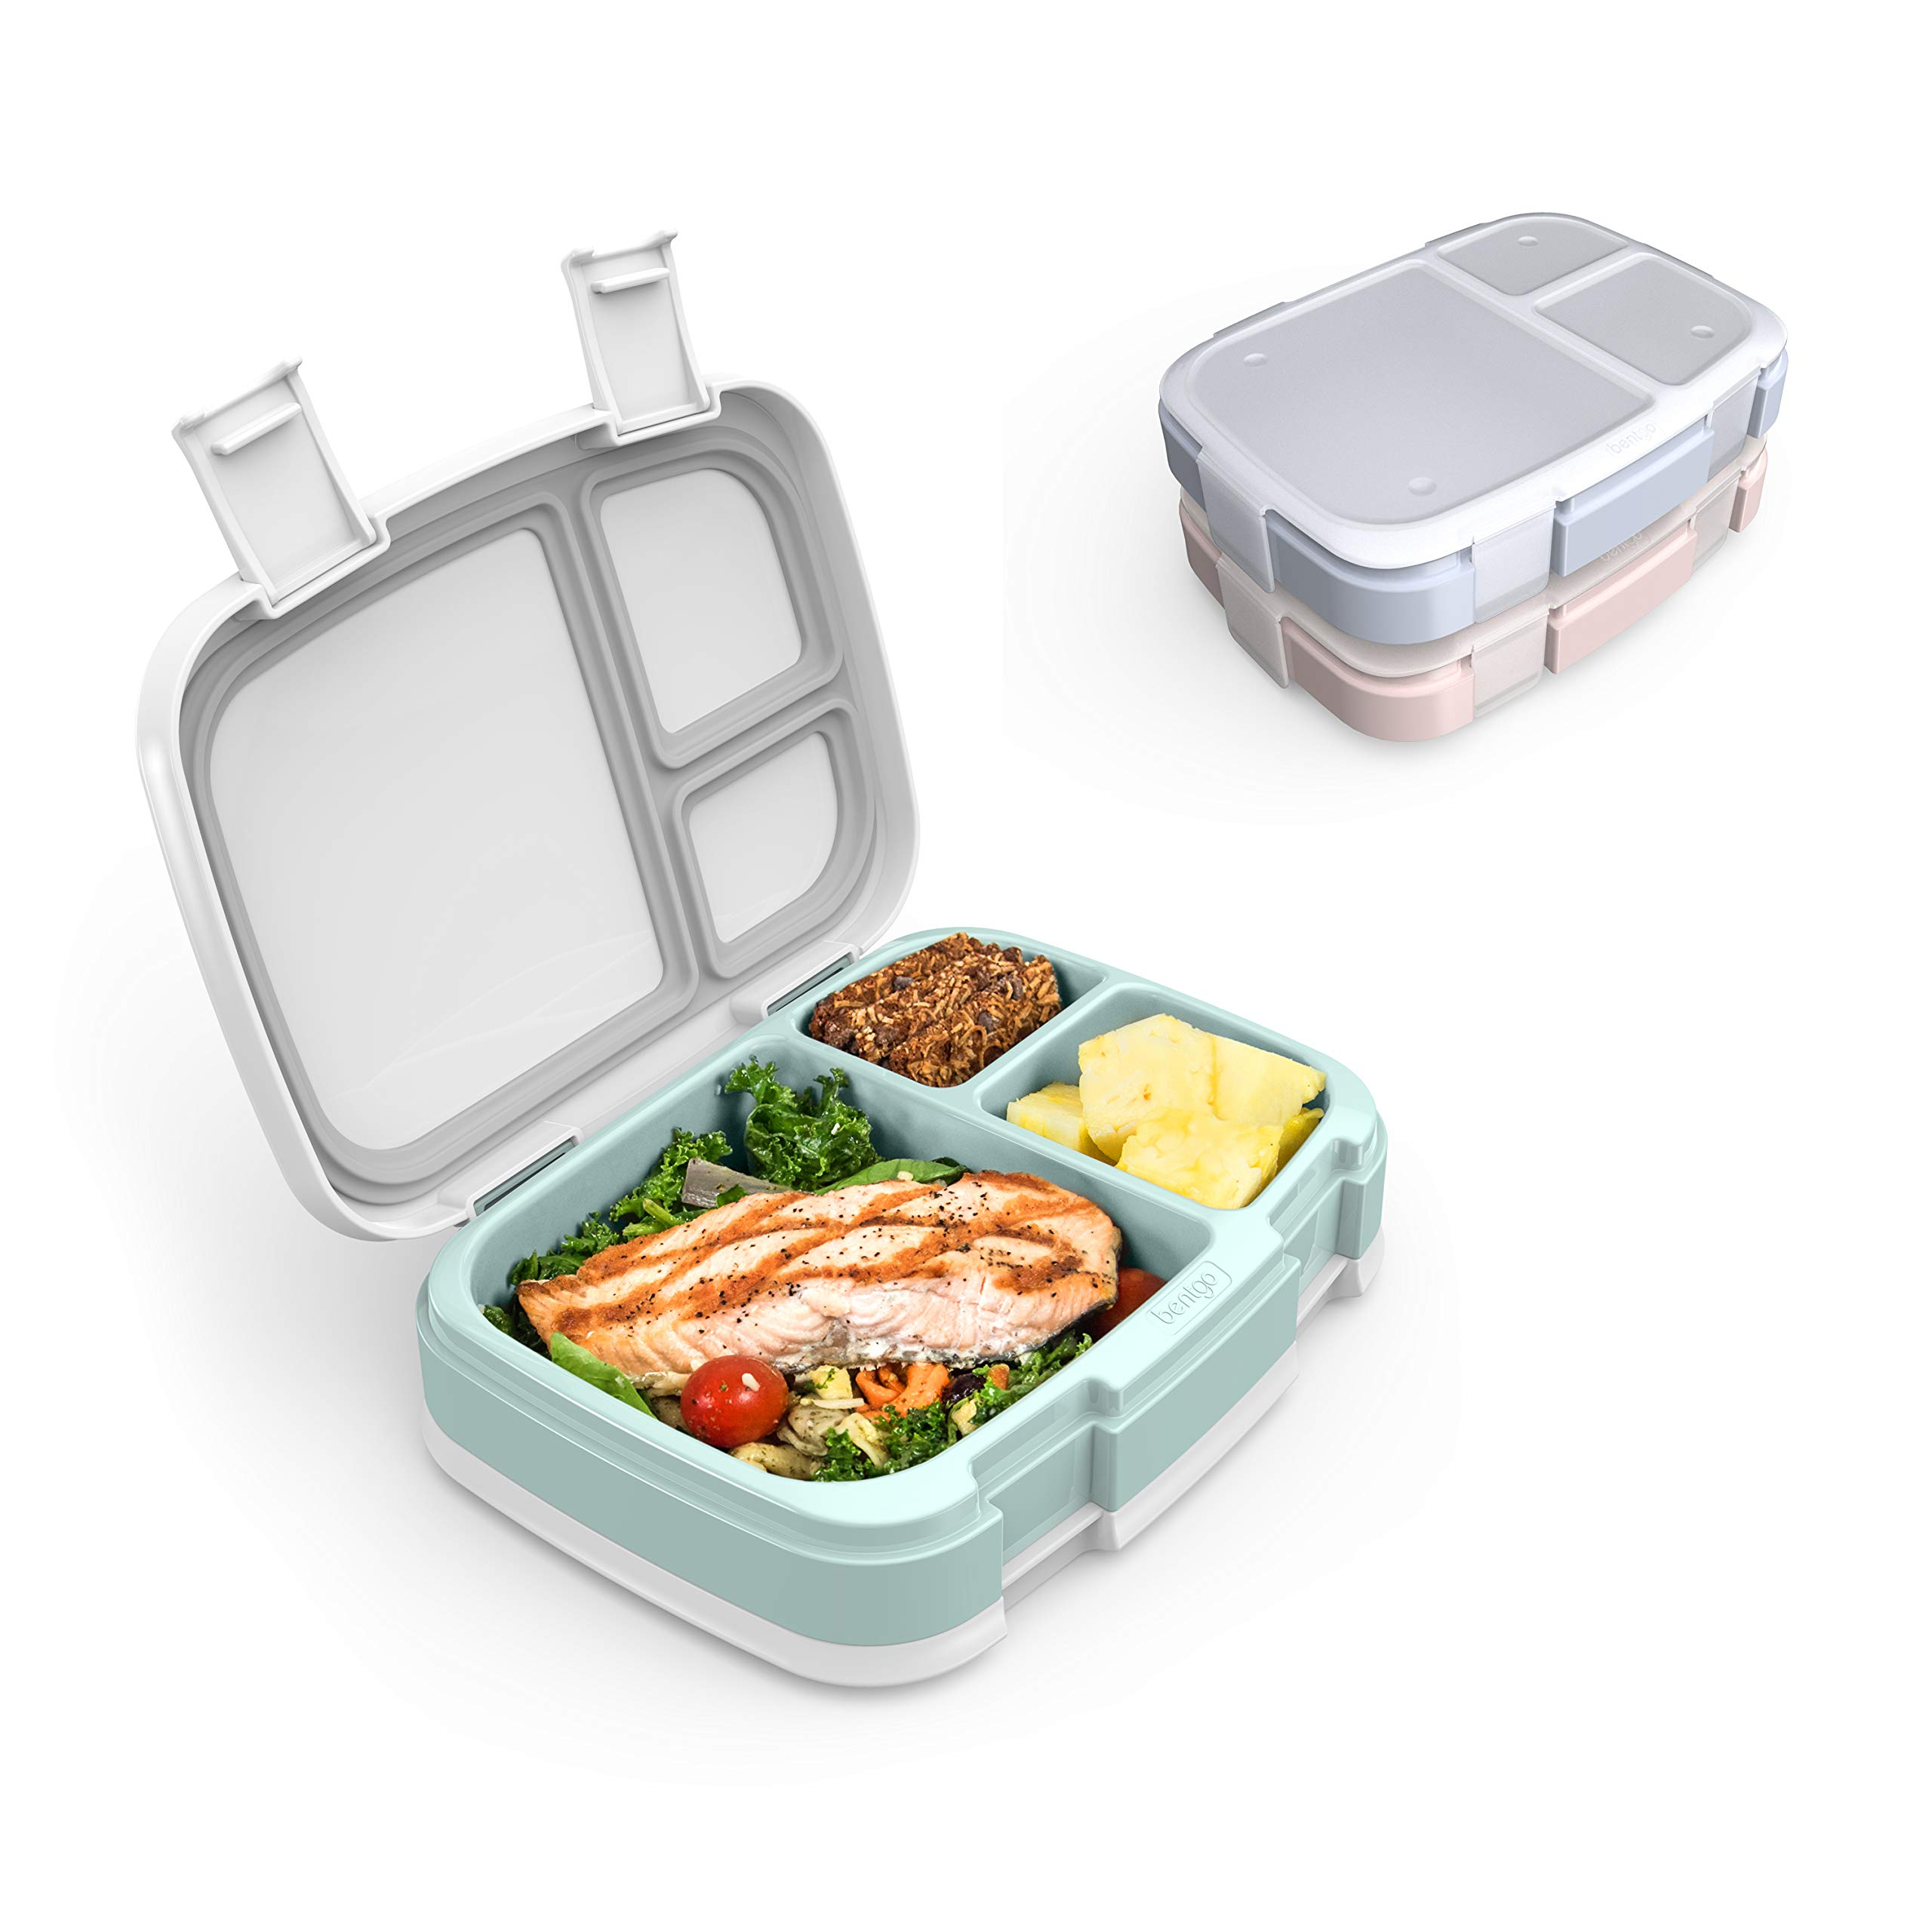 Bentgo Fresh 3-Meal Prep Pack - Versatile Compartment Lunch Box Set - Ideal for Meal Planning, Portion-Control, and Balanced Eating On-The-Go - BPA-Free, Microwave & Dishwasher Safe